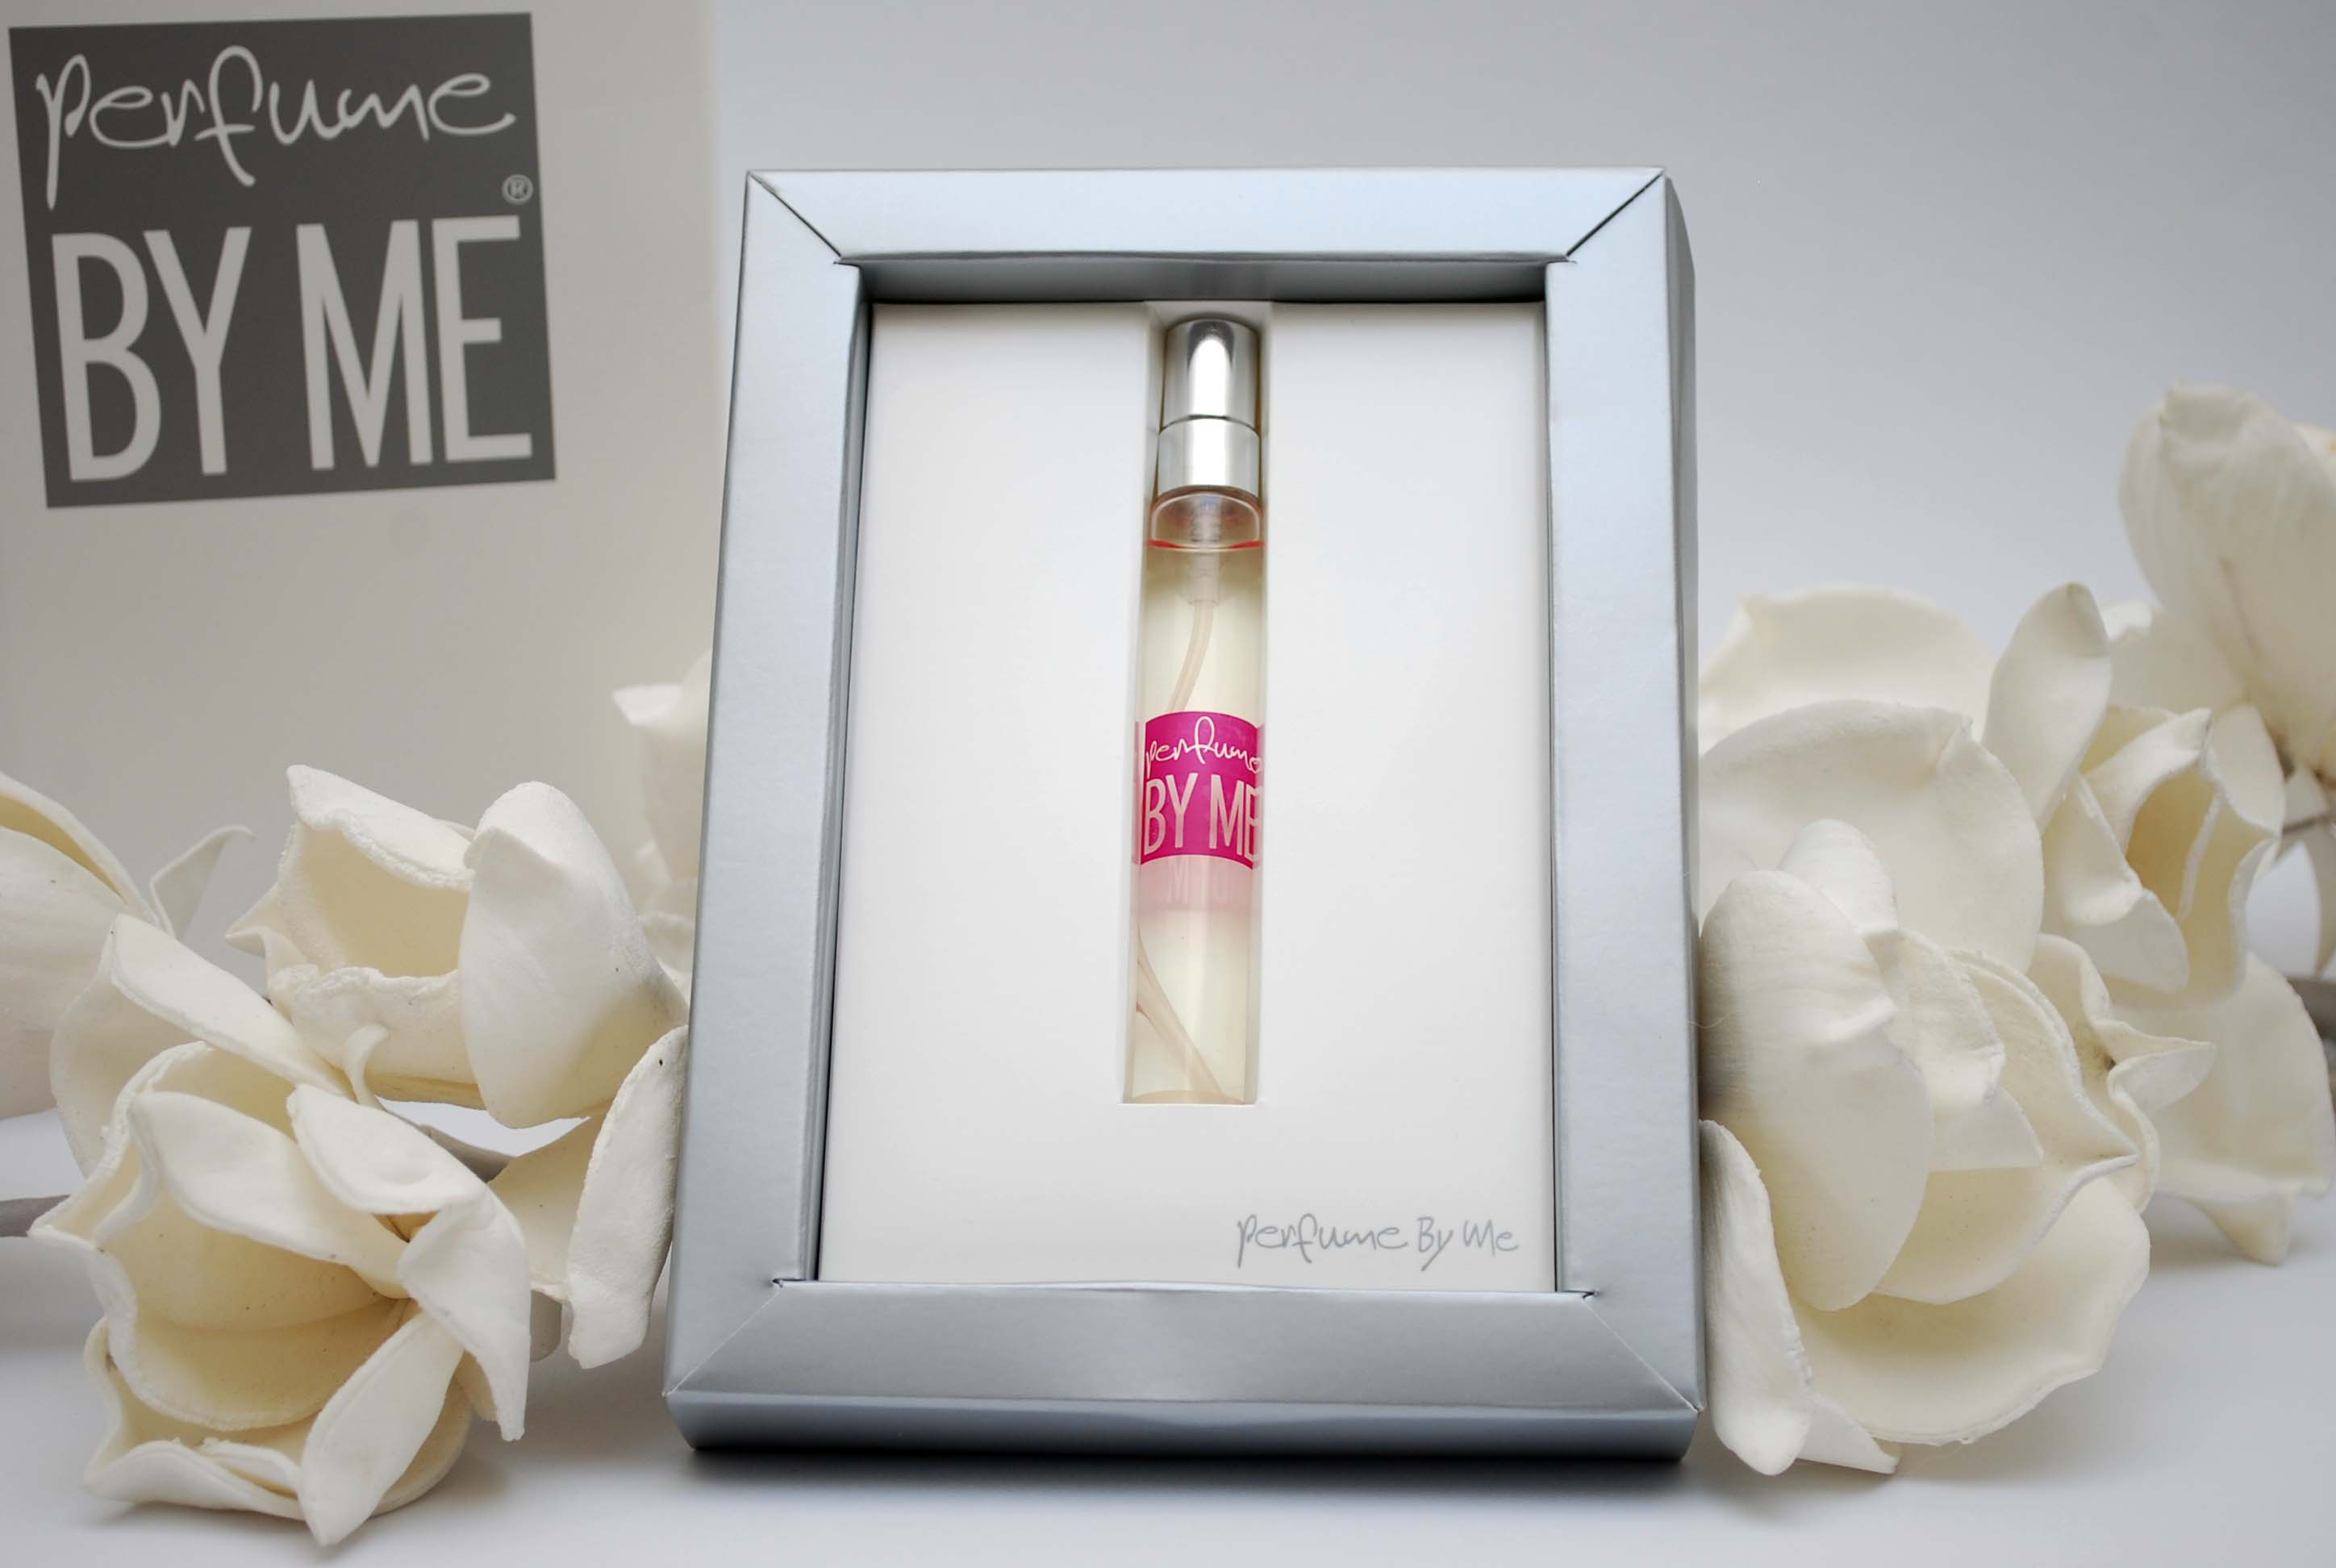 Perfume by me review ervaring